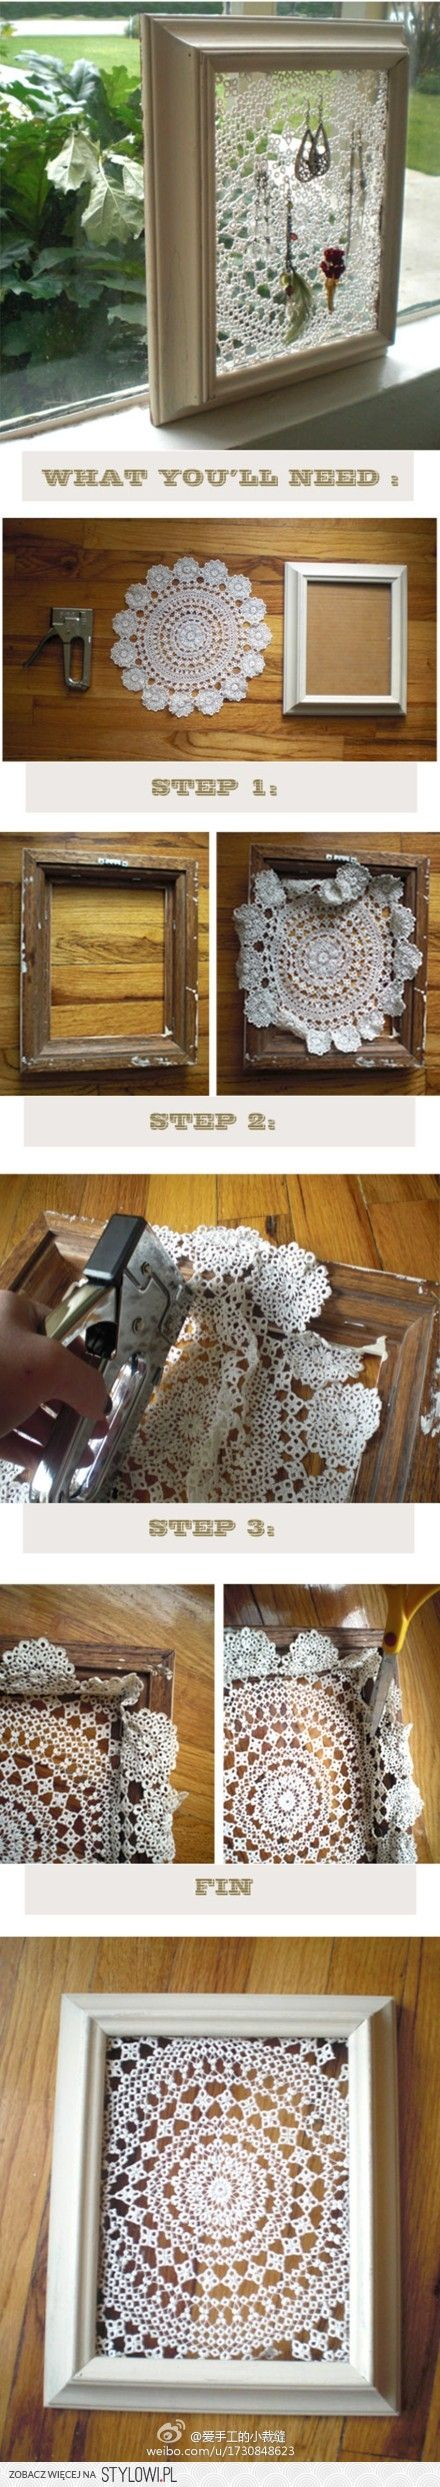 DIY Framed Doily. U can do so much with this idea!